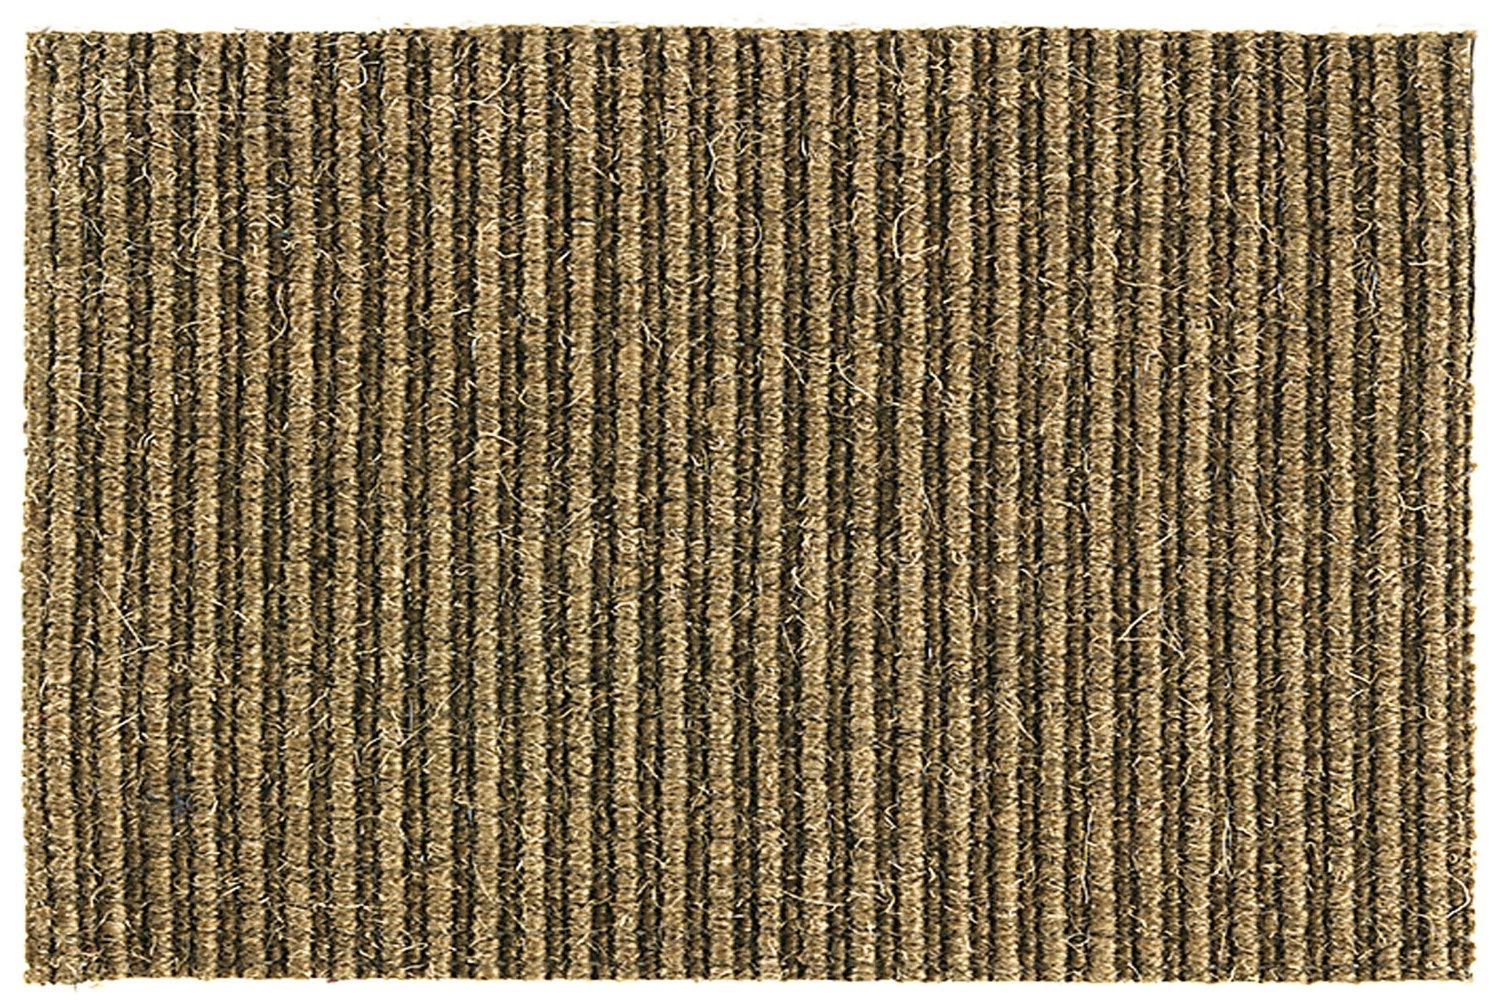 Macro Melange Woven Wall-to-Wall Carpet by Gunilla Lagerhem Ullberg/Petra Lundblad-Friden for Kasthall